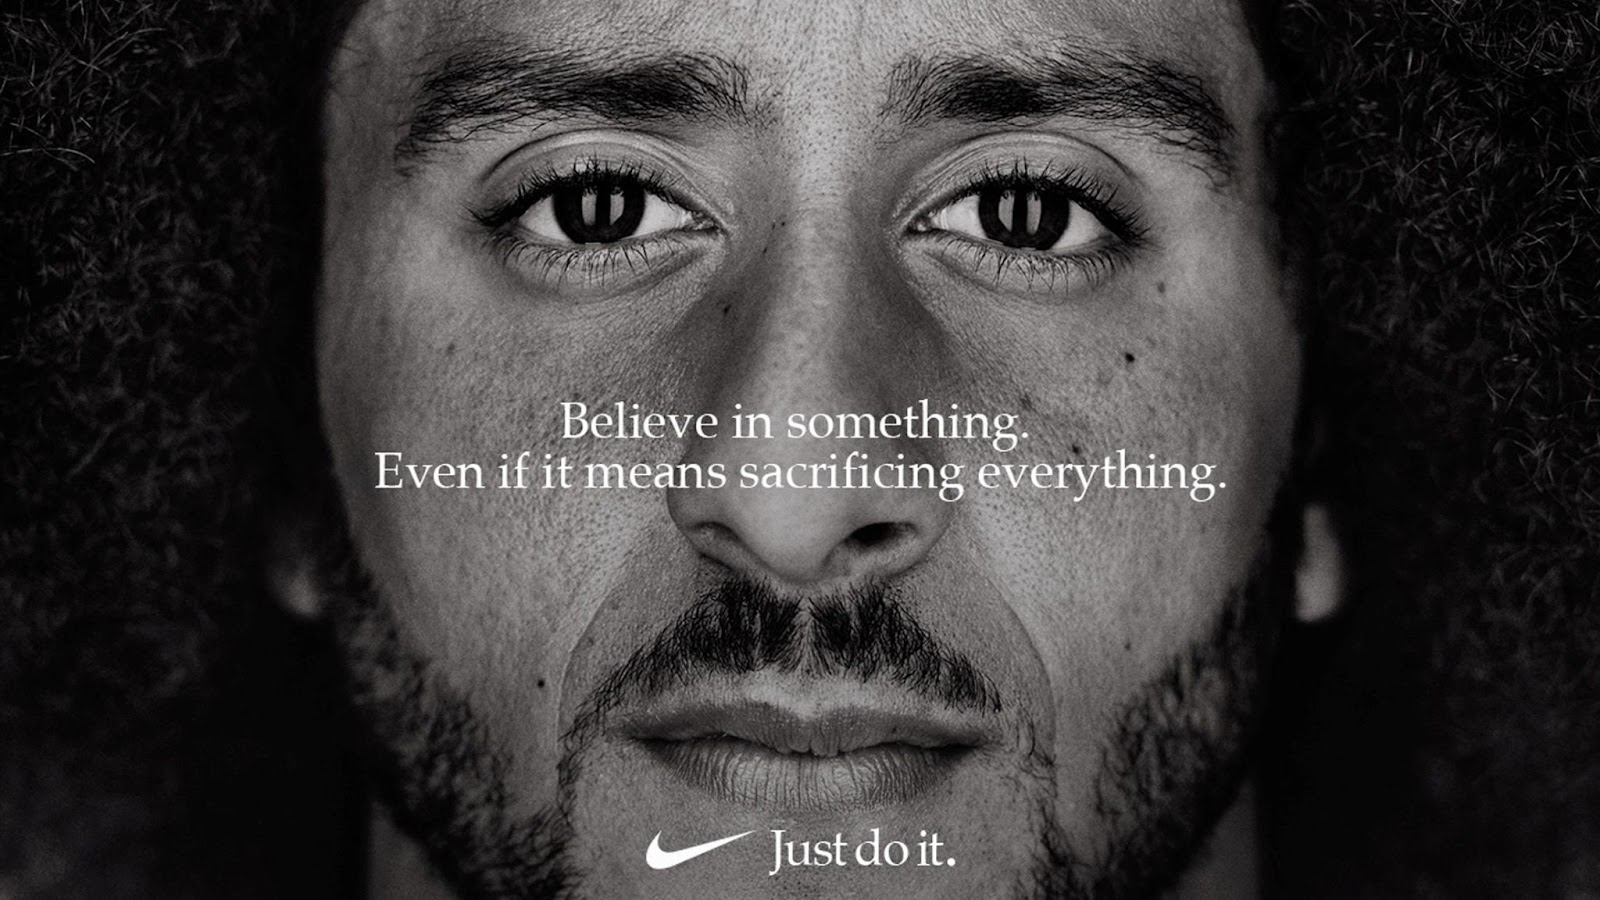 A man with beards and a straight face encouraging to believe in something even if it means sacrificing everything.